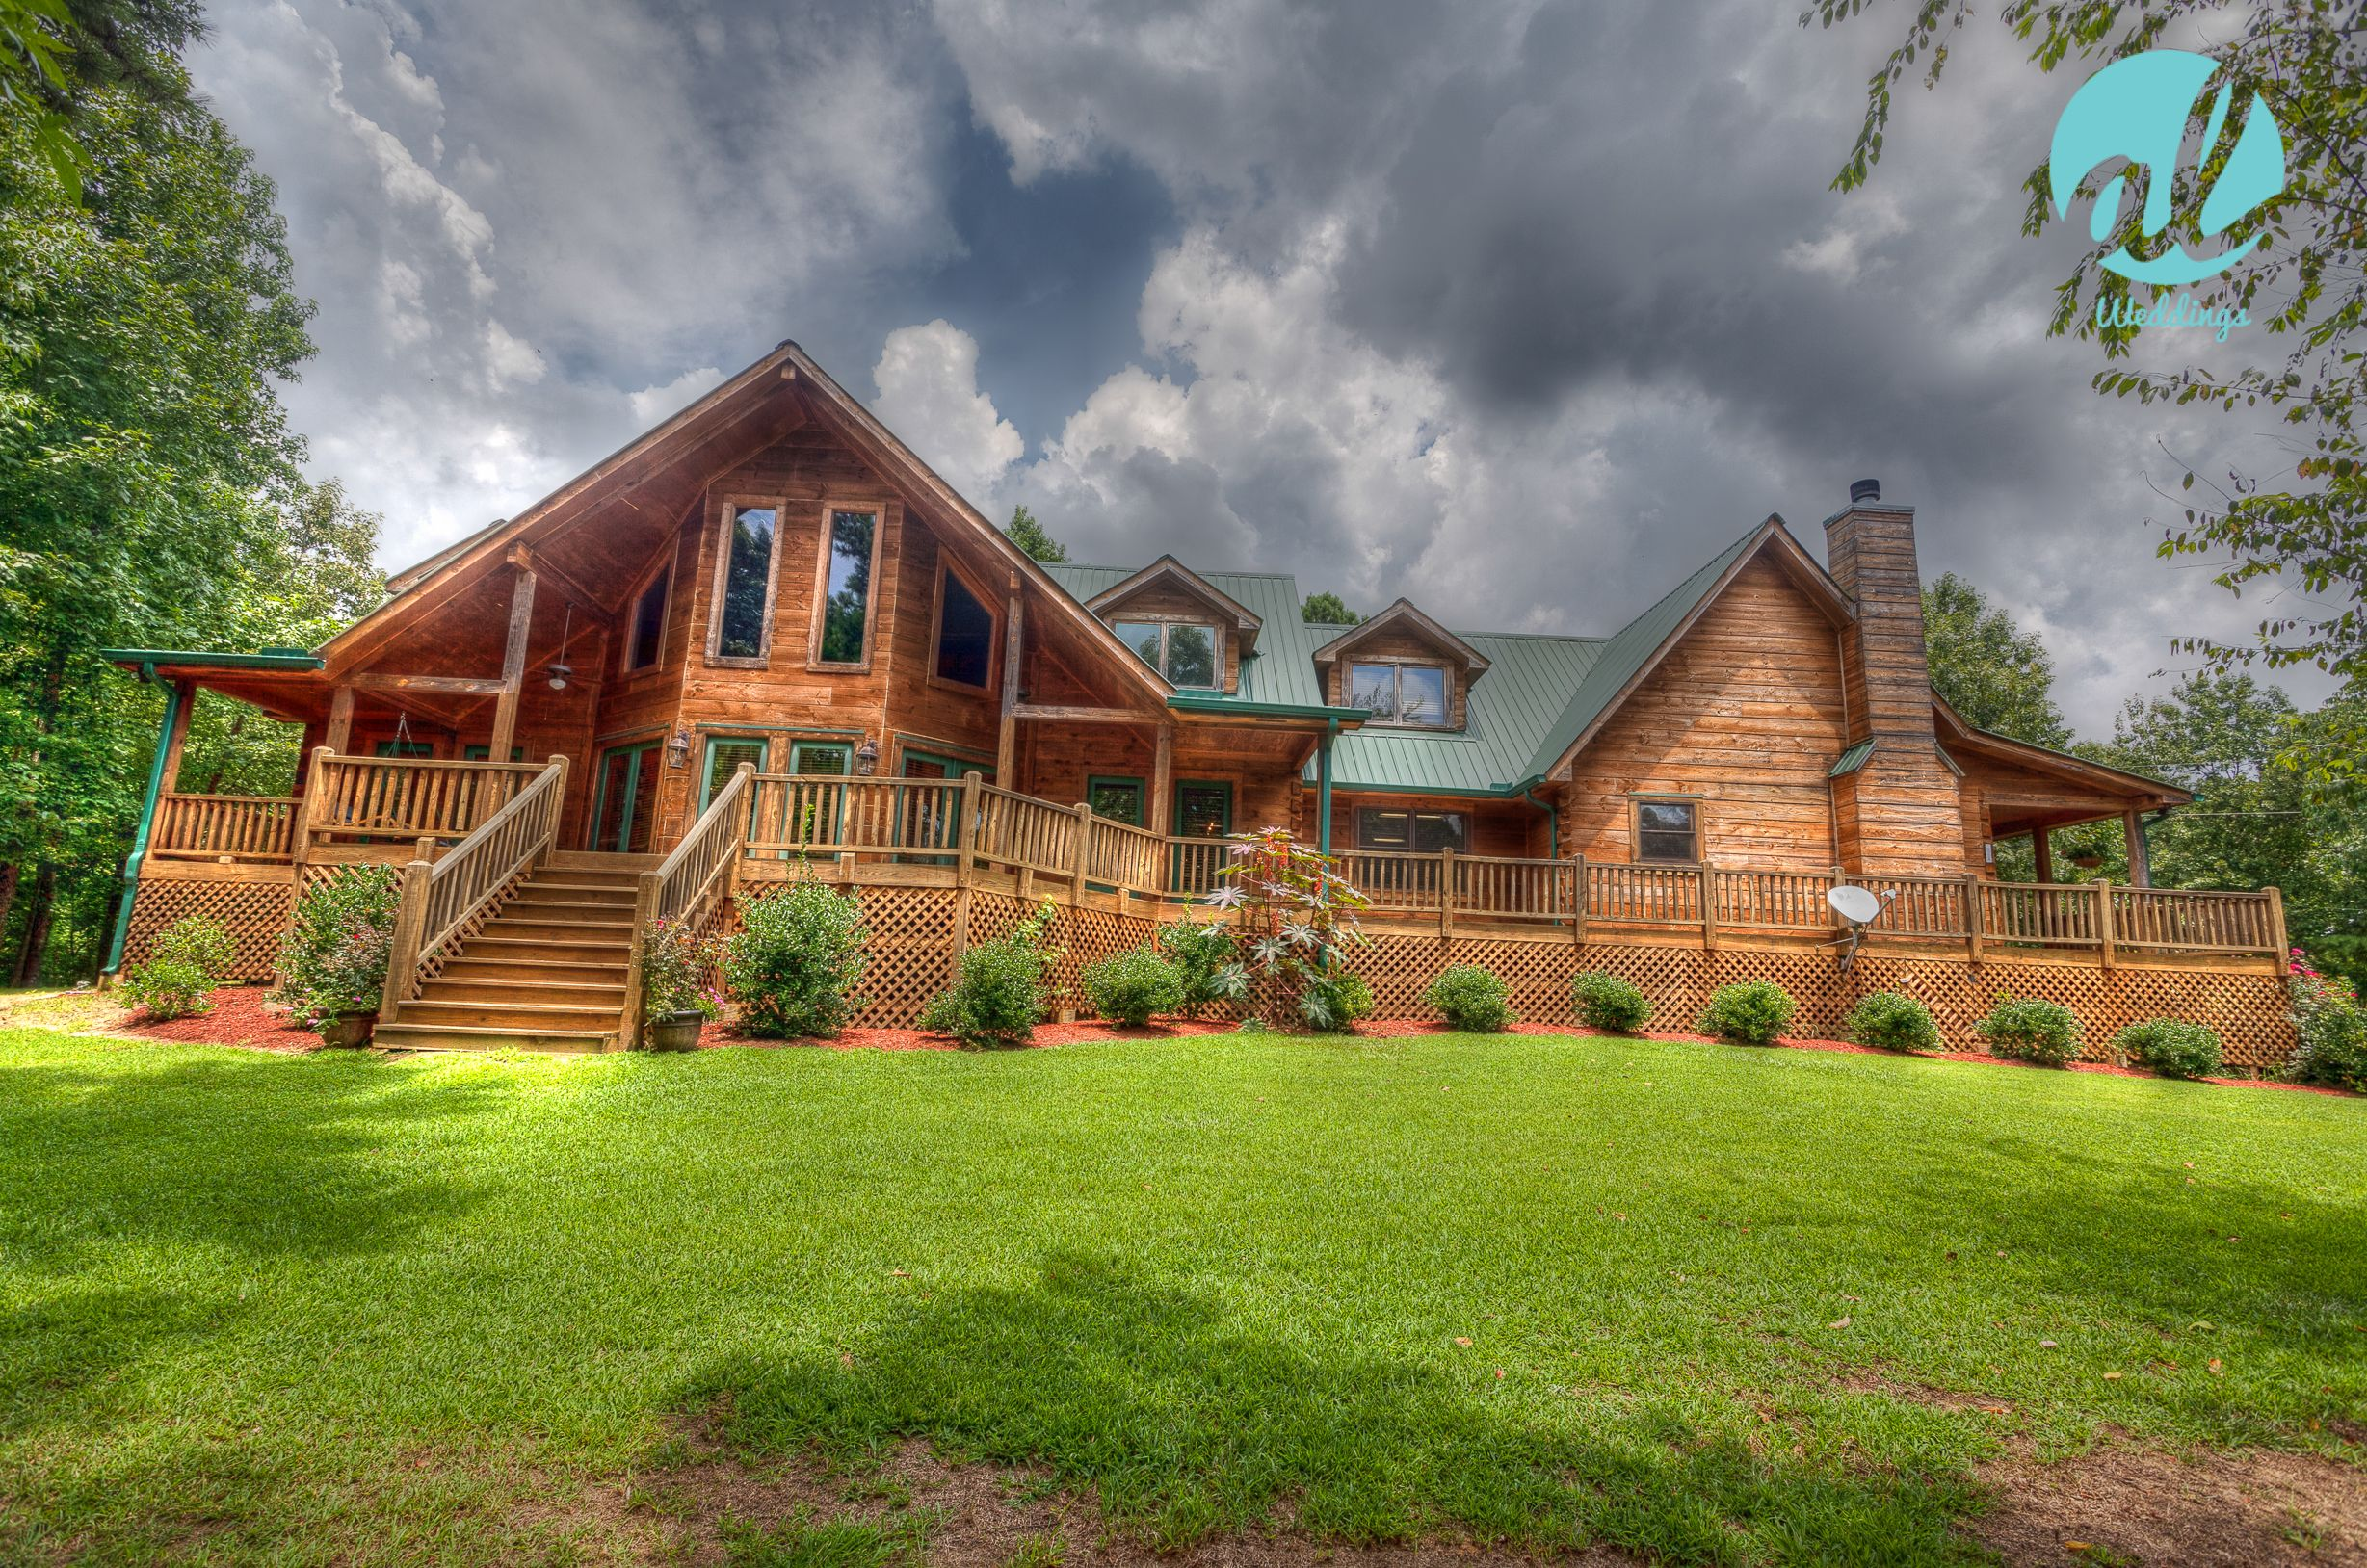 HDR Photography Of Wedding Venue The Cabin At Lodge In Birmingham Al